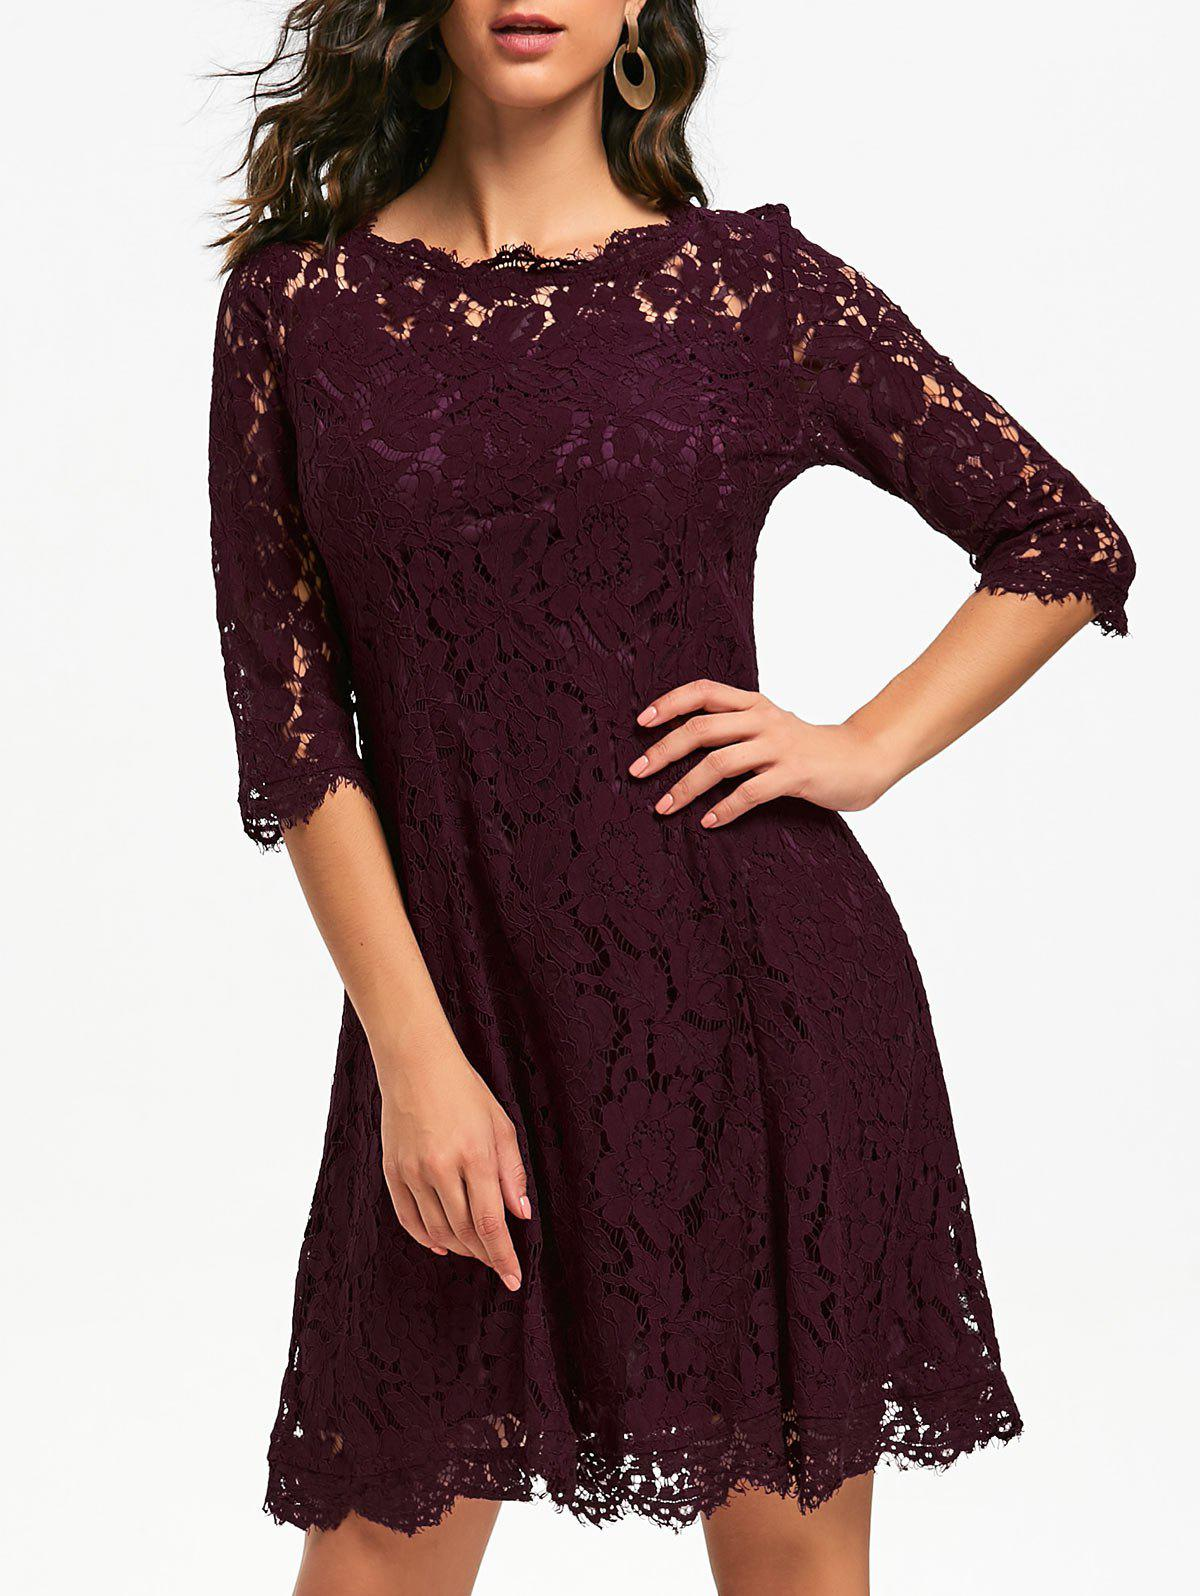 Lace Mini Evening Party DressWOMEN<br><br>Size: XL; Color: WINE RED; Style: Brief; Material: Polyester; Silhouette: A-Line; Dresses Length: Mini; Neckline: Round Collar; Sleeve Length: 3/4 Length Sleeves; Pattern Type: Solid; With Belt: No; Season: Fall,Spring; Weight: 0.4200kg; Package Contents: 1 x Dress; Occasion: Bridesmaid,Evening,Formal,Party,Semi Formal;